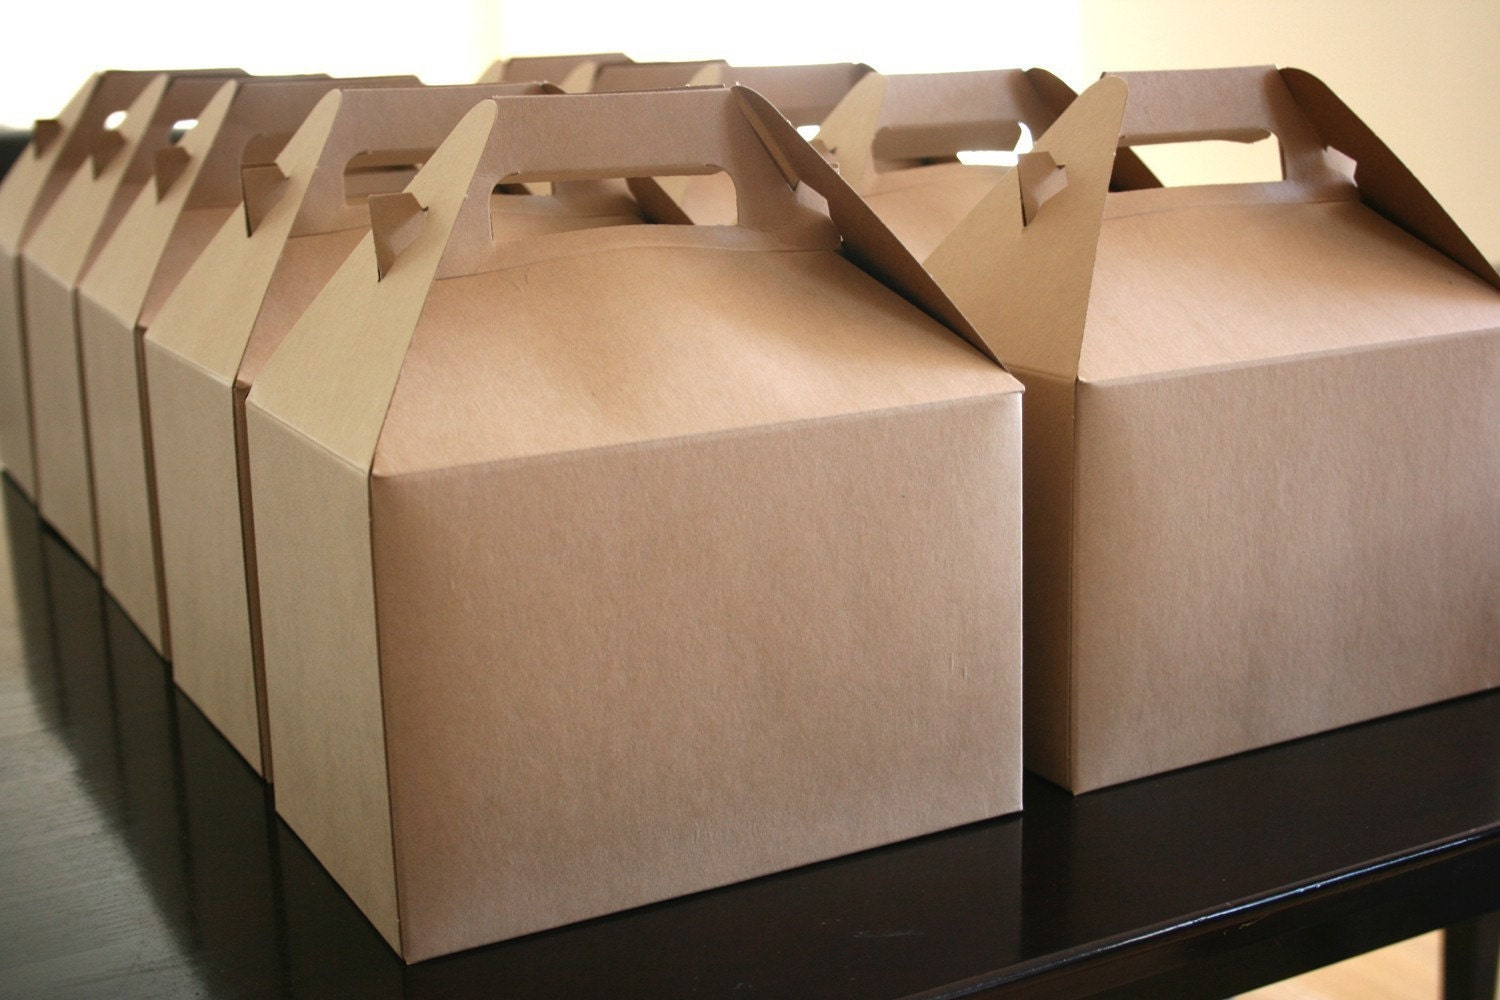 These goody boxes are perfect for filling with little party favors or wrapped candies! Great for wedding favors at your reception, simply match to your wedding colors! These can also be used for birthday parties, school events, church events and more! These treat boxes come with handles for easy.